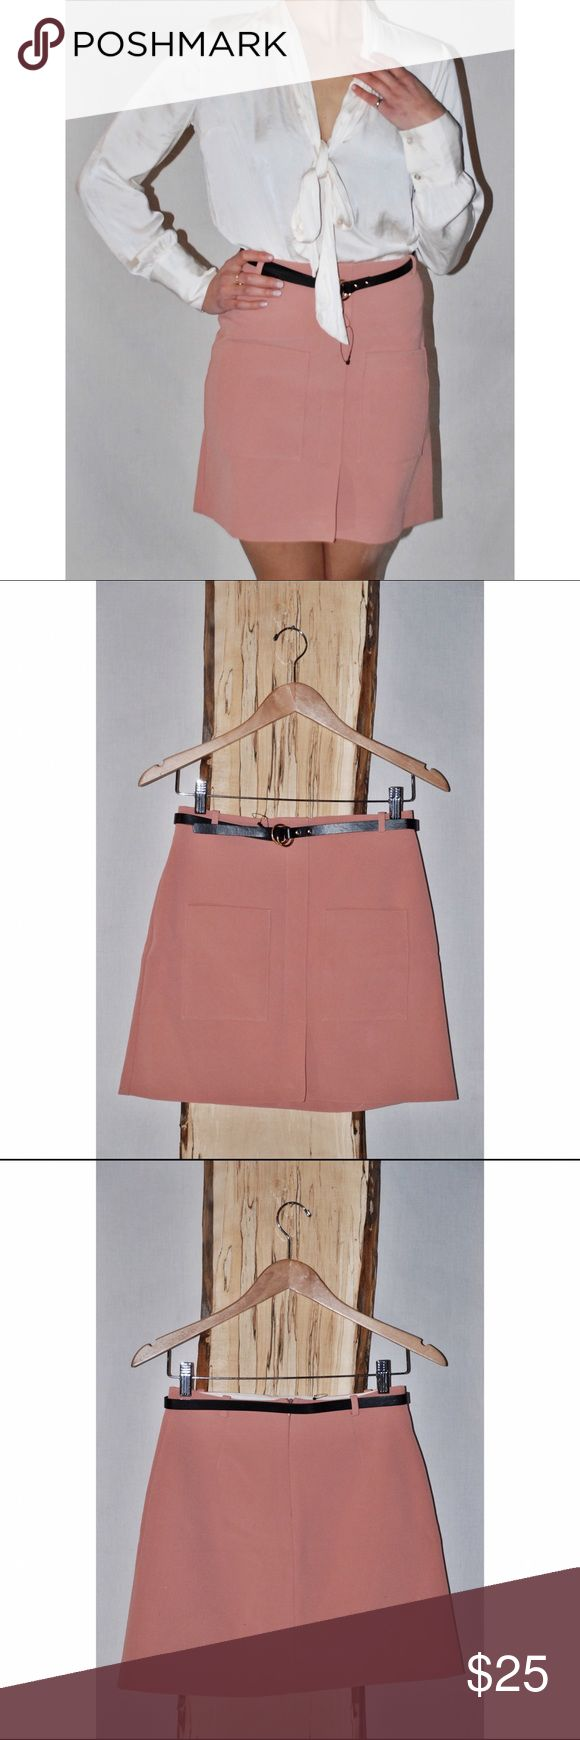 ASOS A-Line Skirt in Blush -River Island from ASOS skirt   - Blush colored fabric with front pockets and slit. Back zipper. Detachable belt is included with skirt  - NWT never been worn ASOS Skirts A-Line or Full